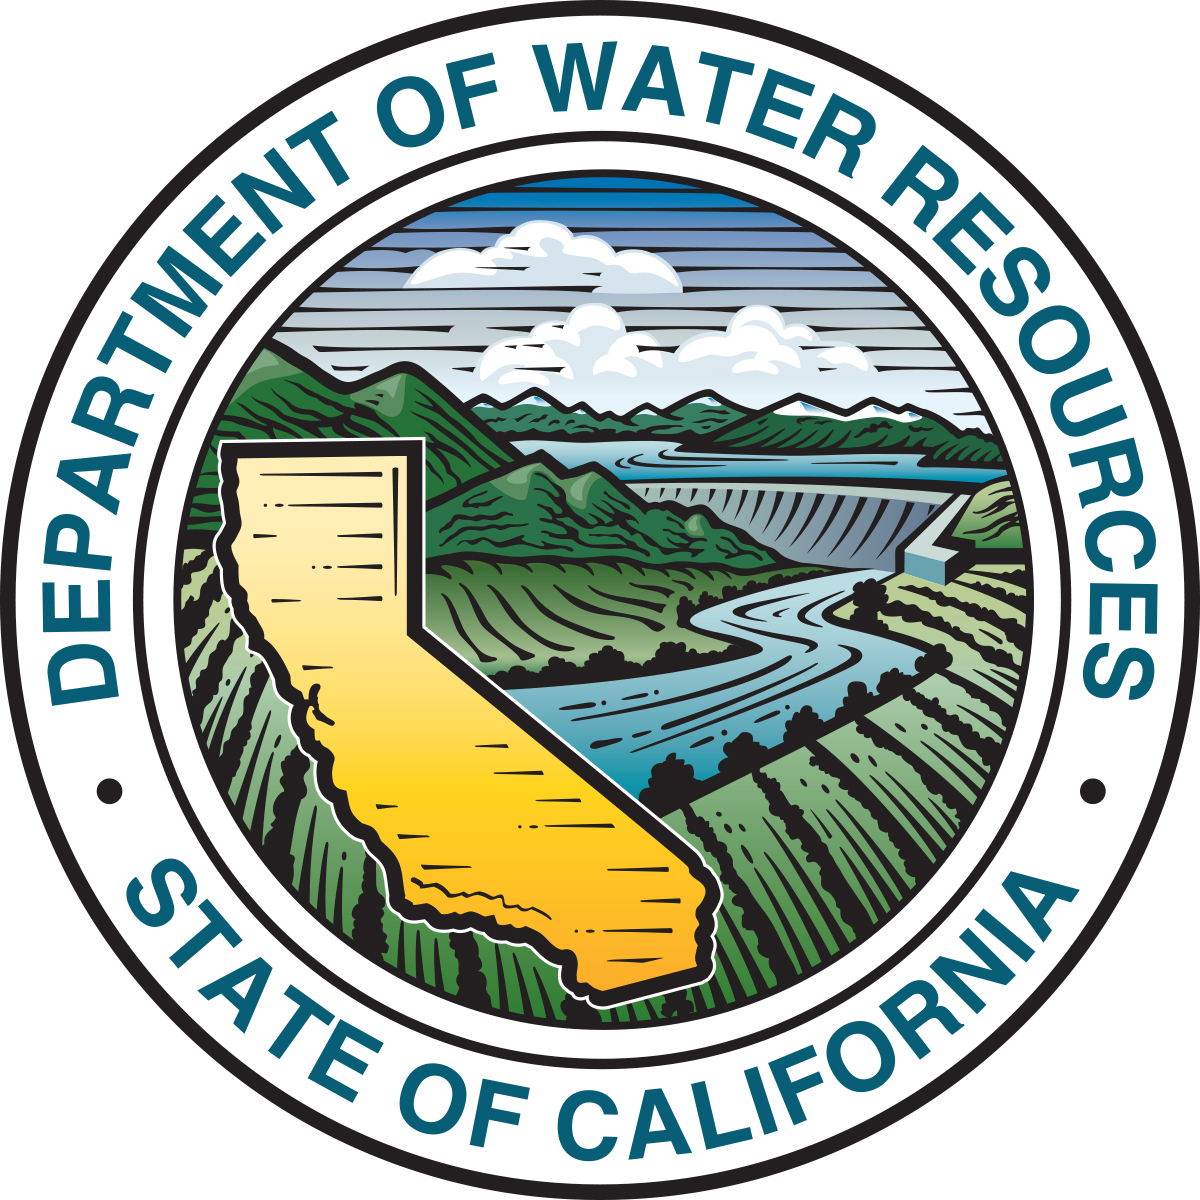 California Department of Water Resources Water System Revenue Bonds - Official Seal or Logo